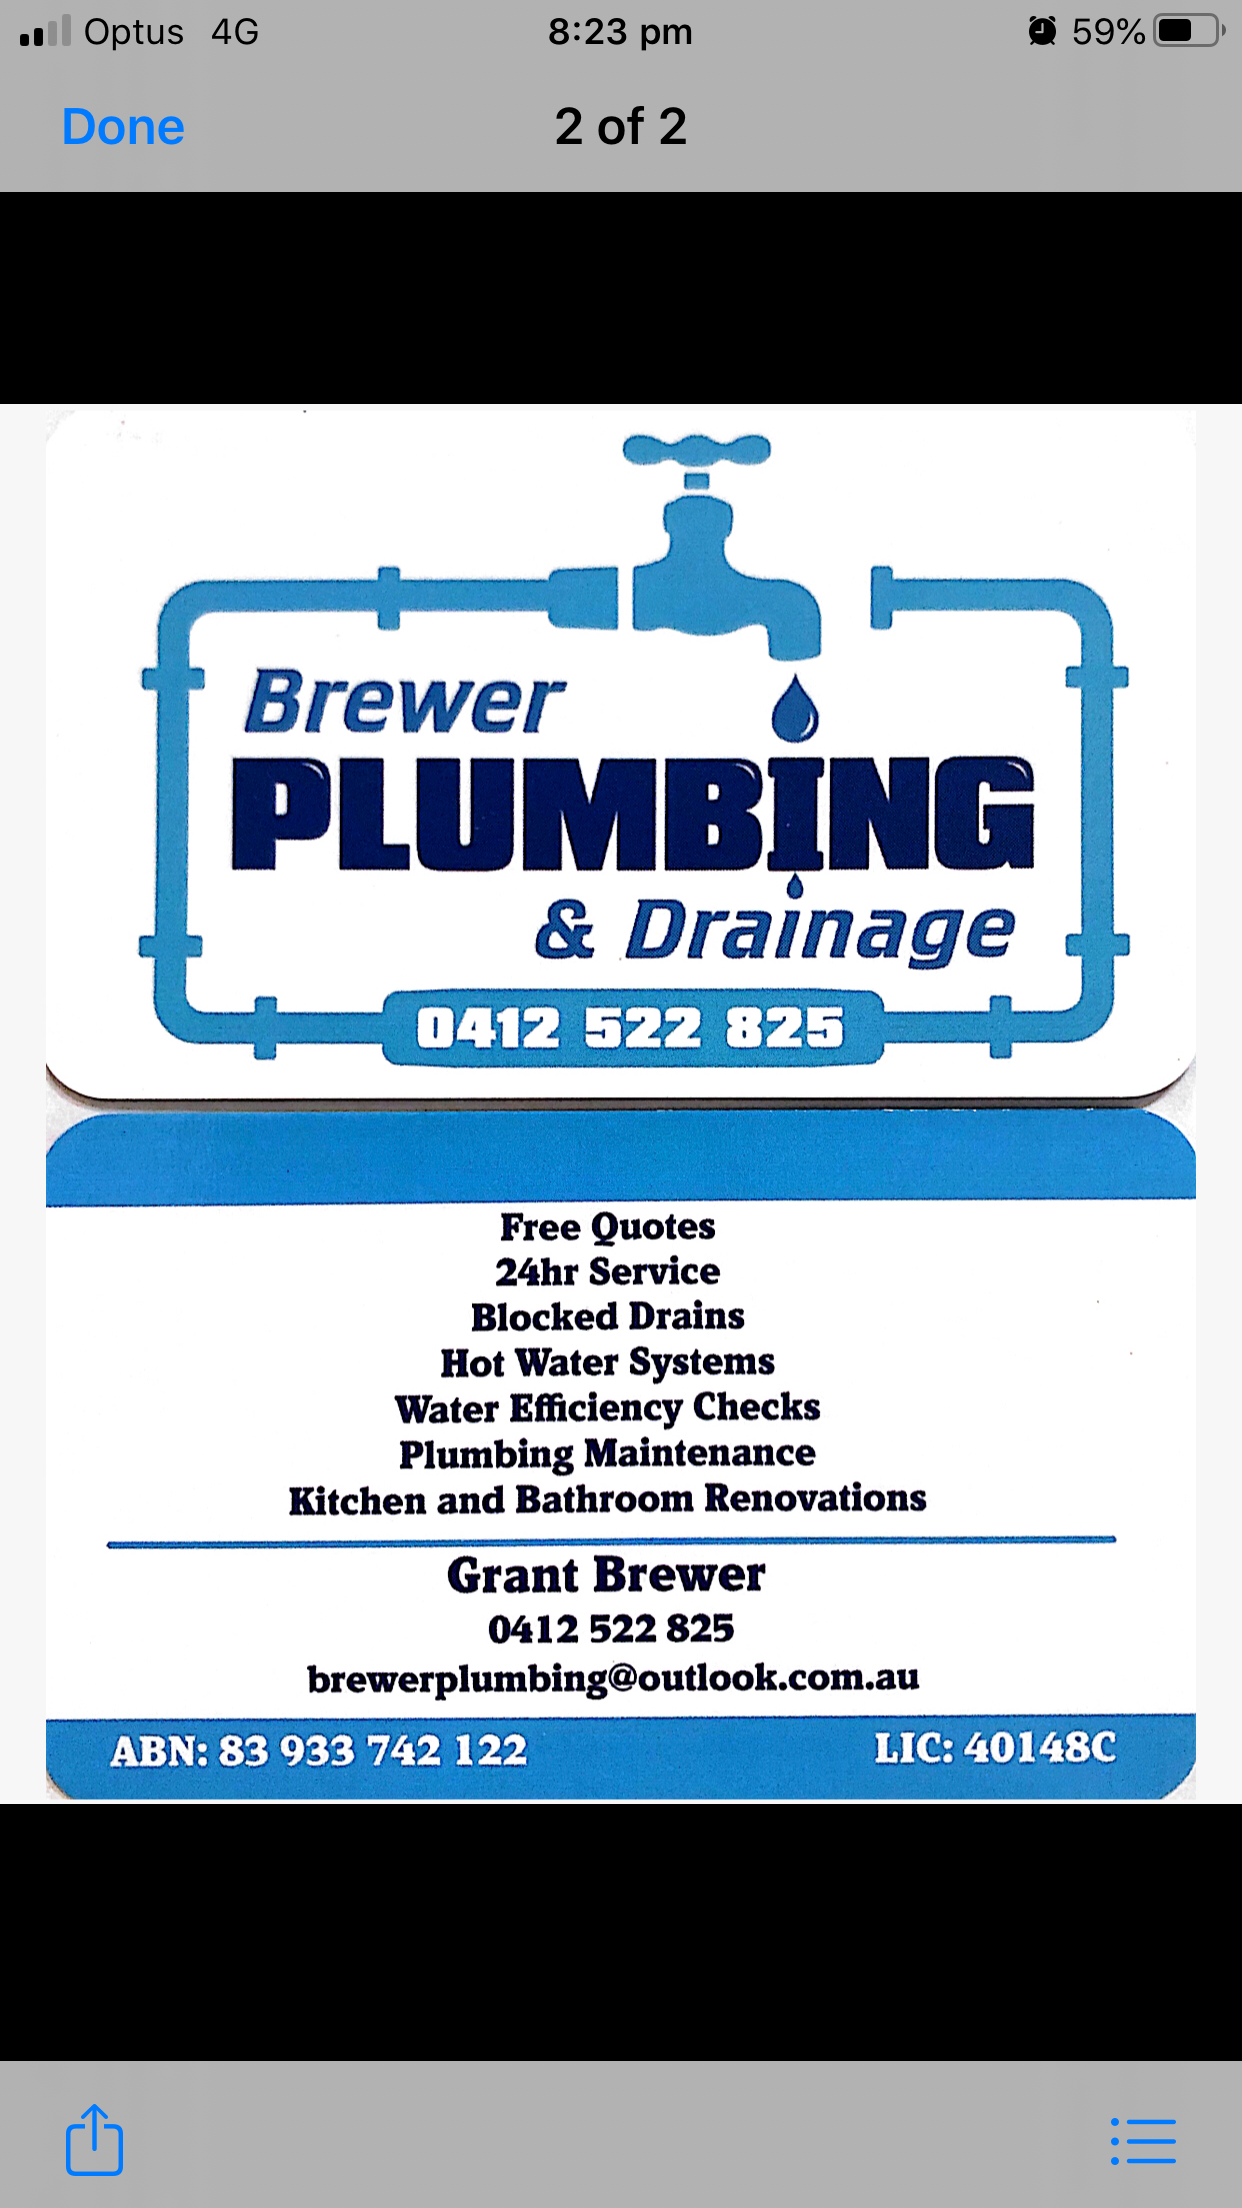 Brewer Plumbing & Drainage